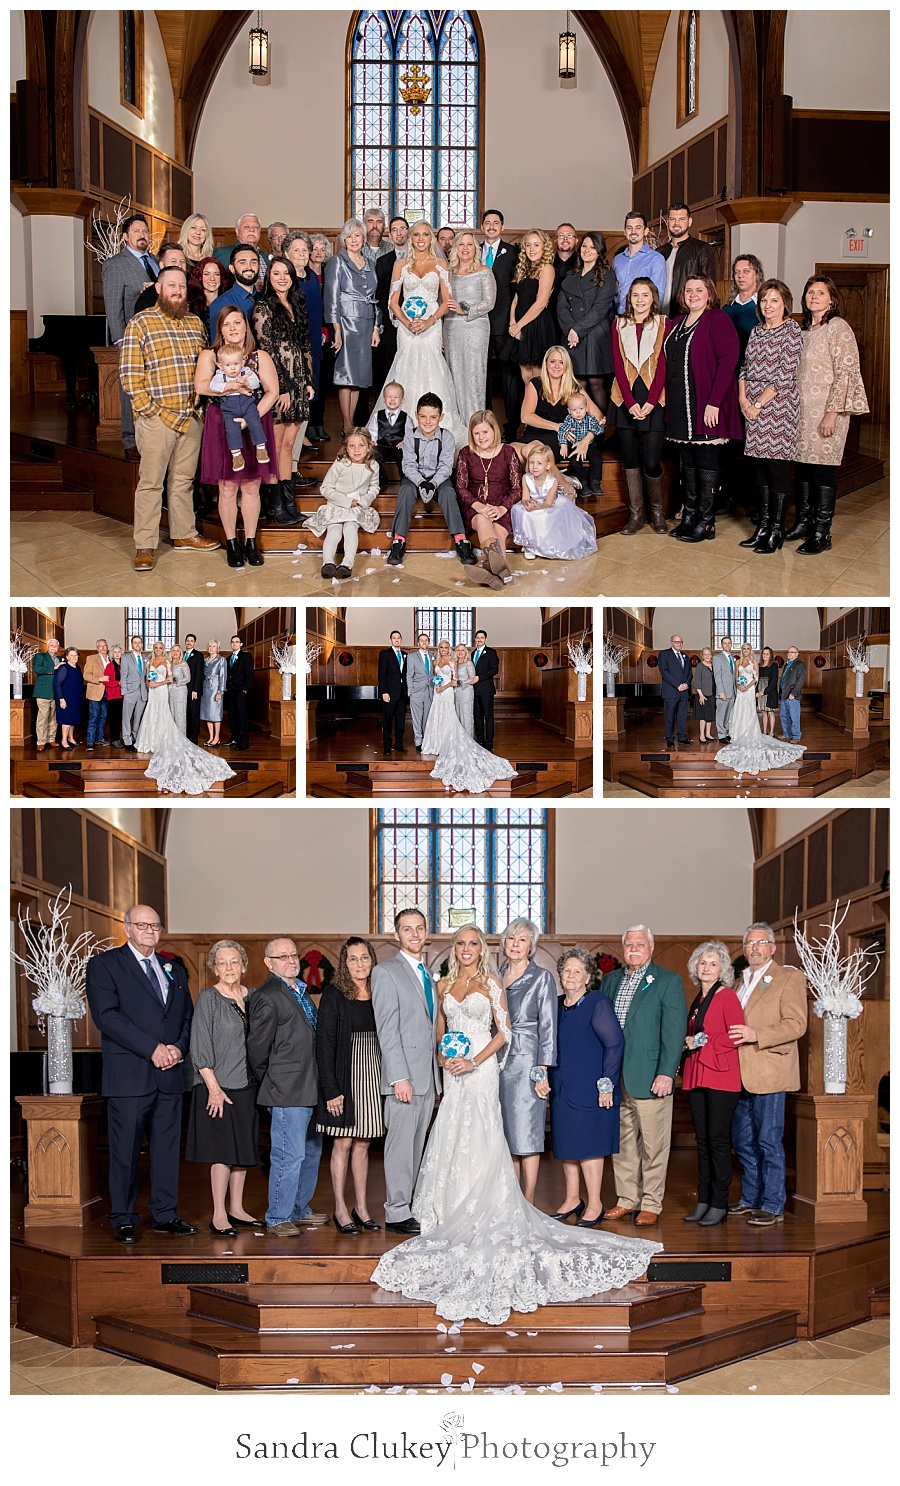 Gorgeous Formals in the Chapel at Lee University